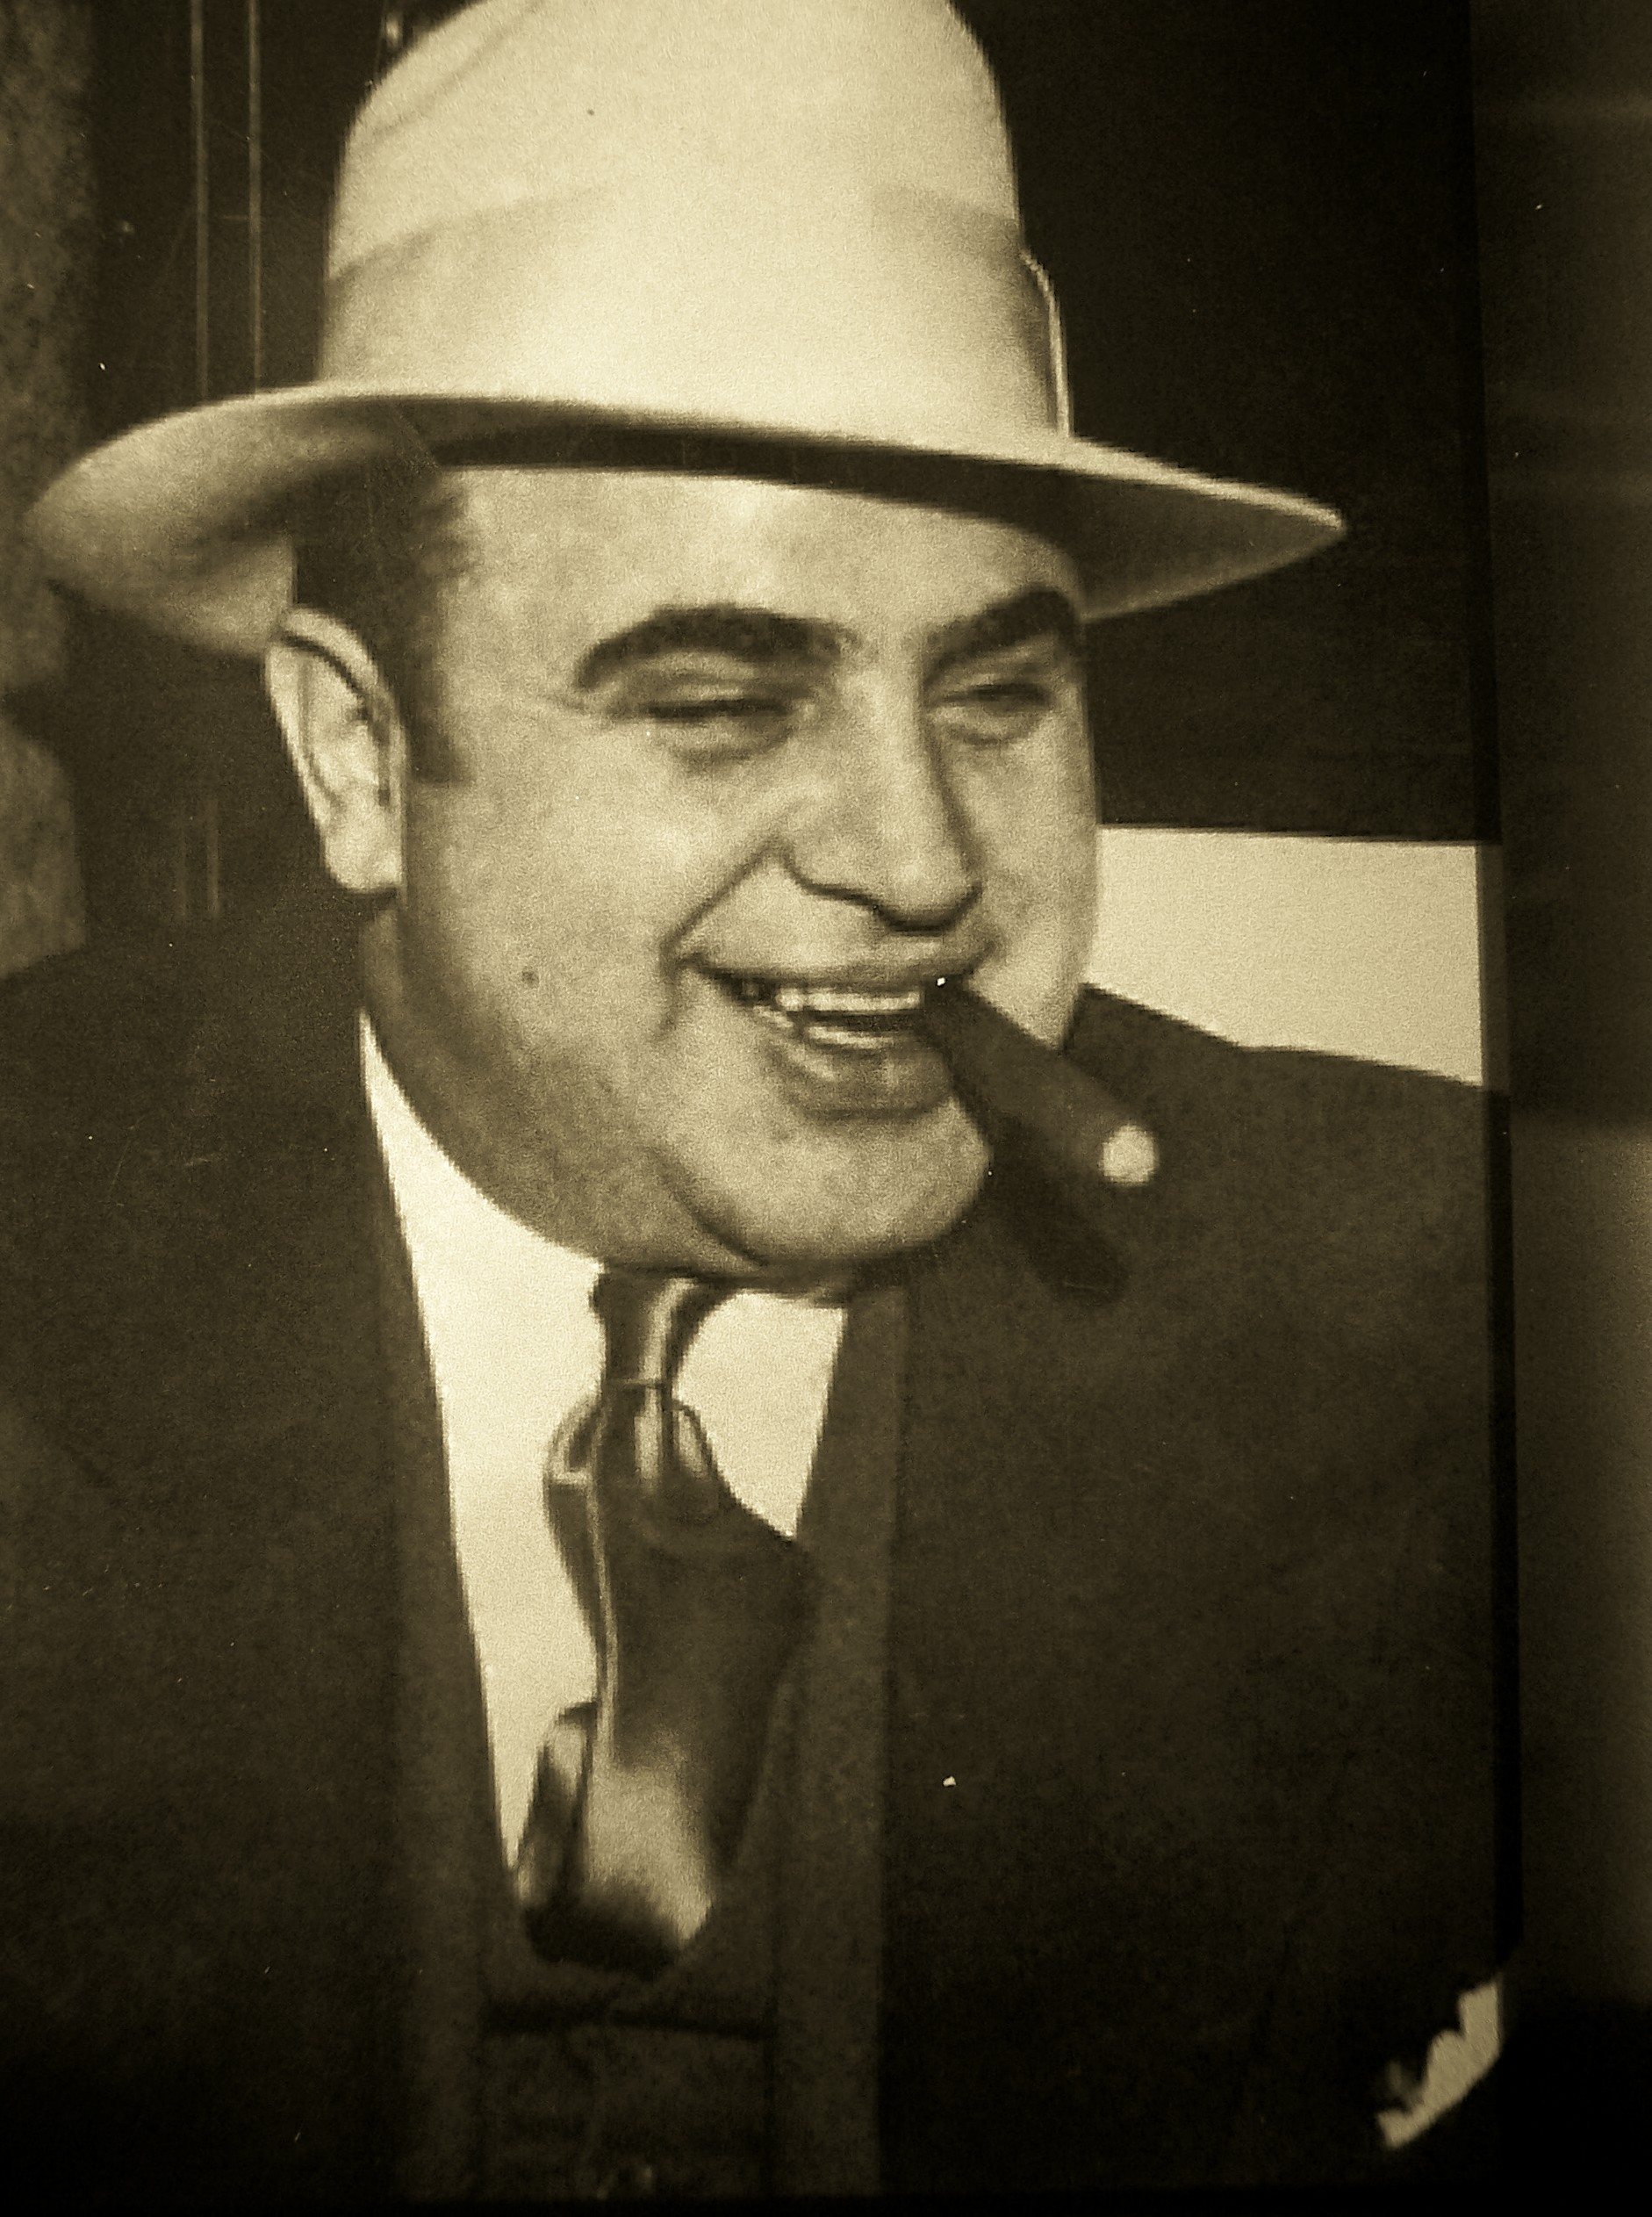 http://nicolakirk.files.wordpress.com/2010/03/05-03-2010-al-capone.jpg